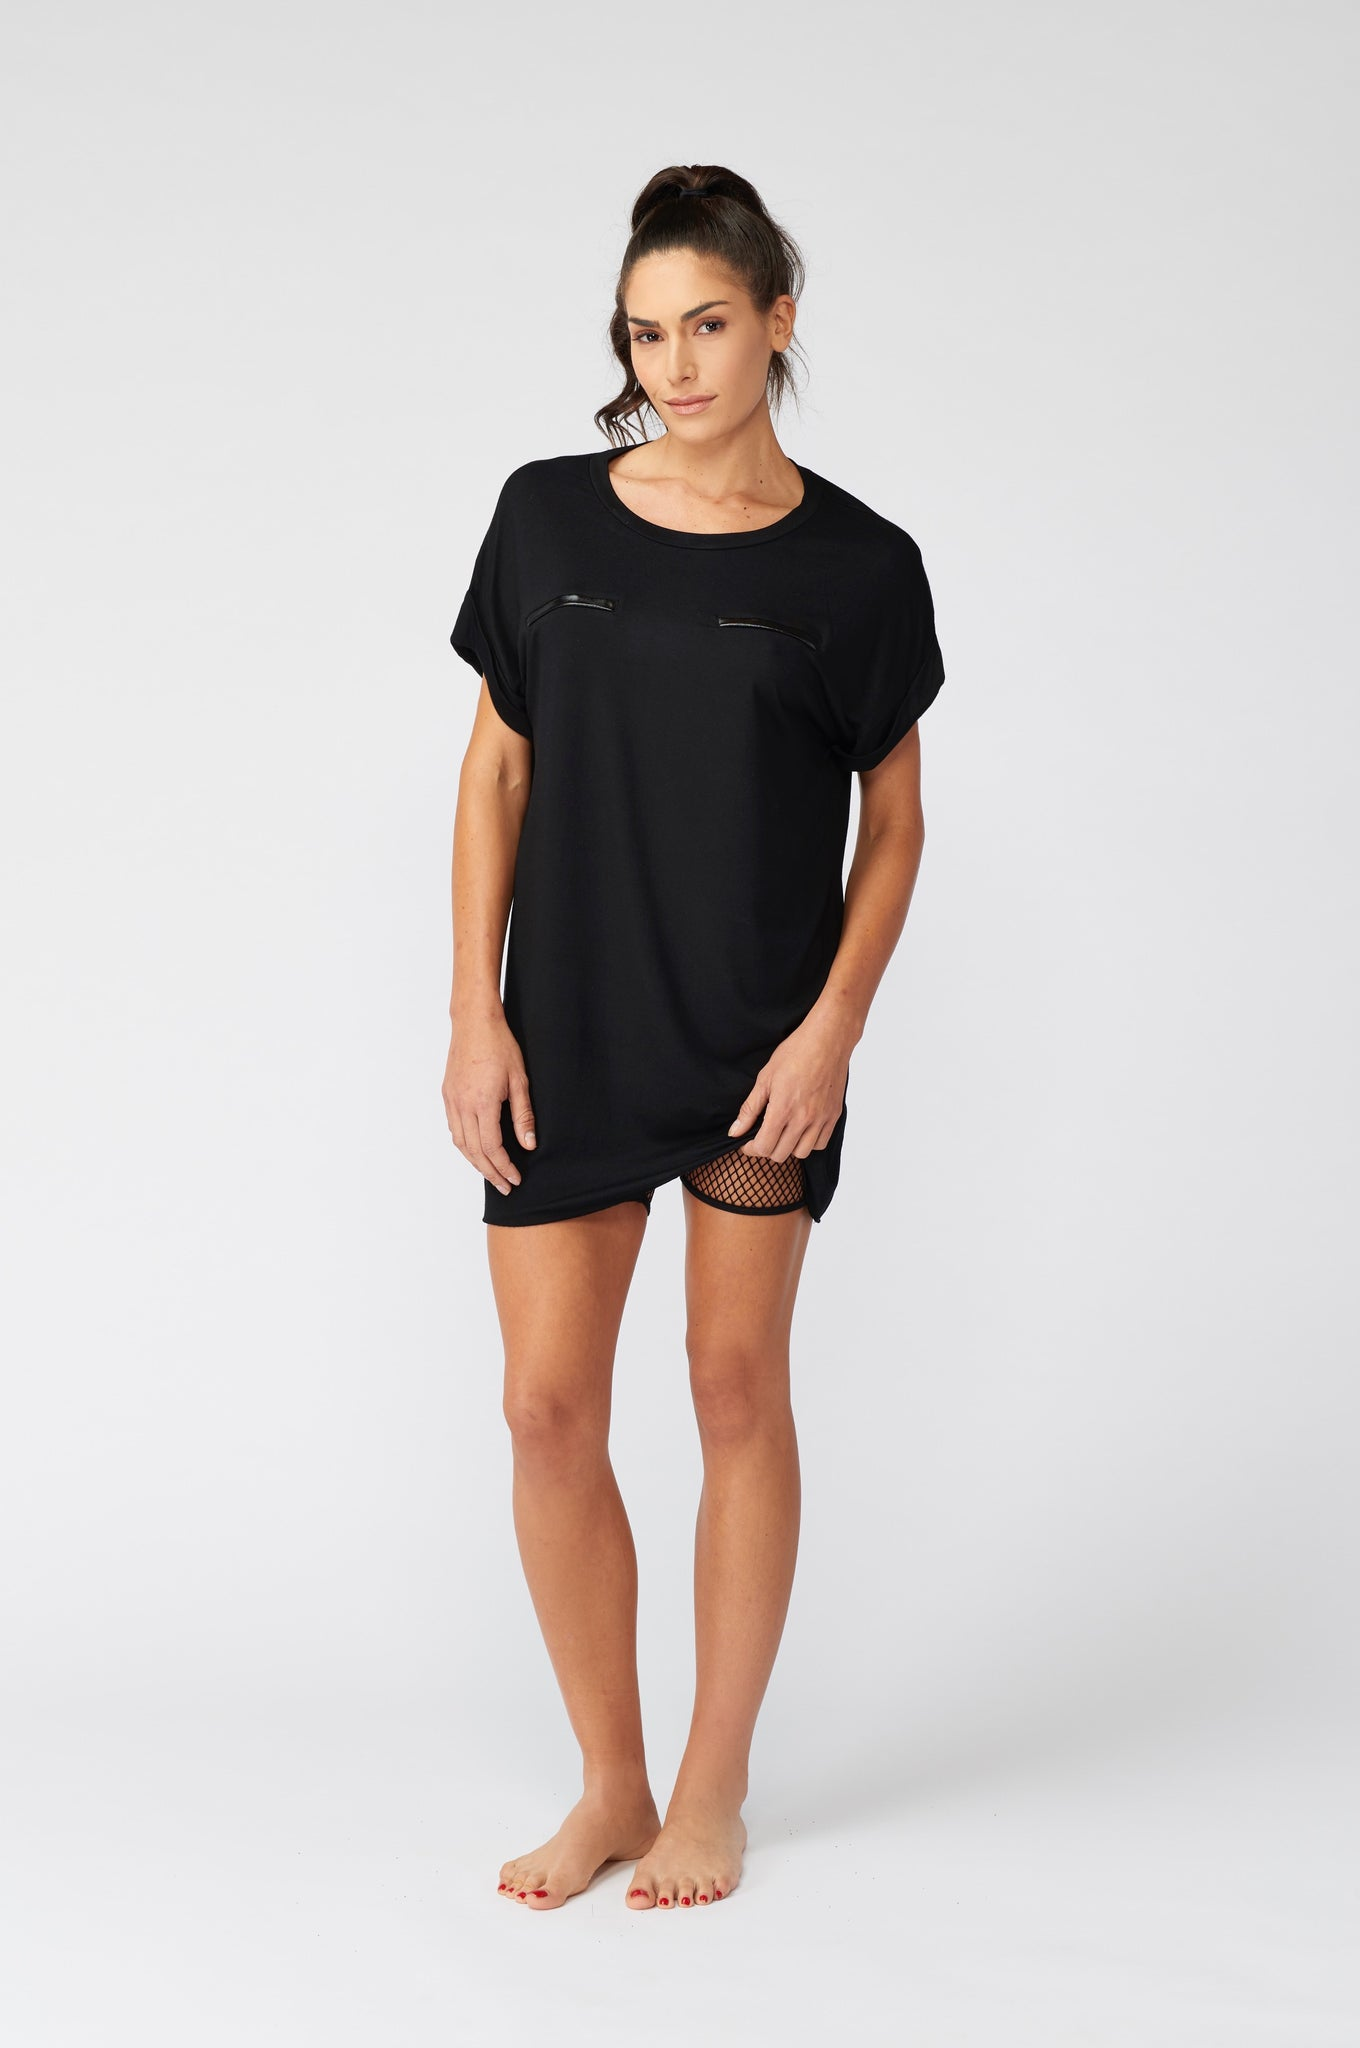 Women's T-Shirt Dress By C2